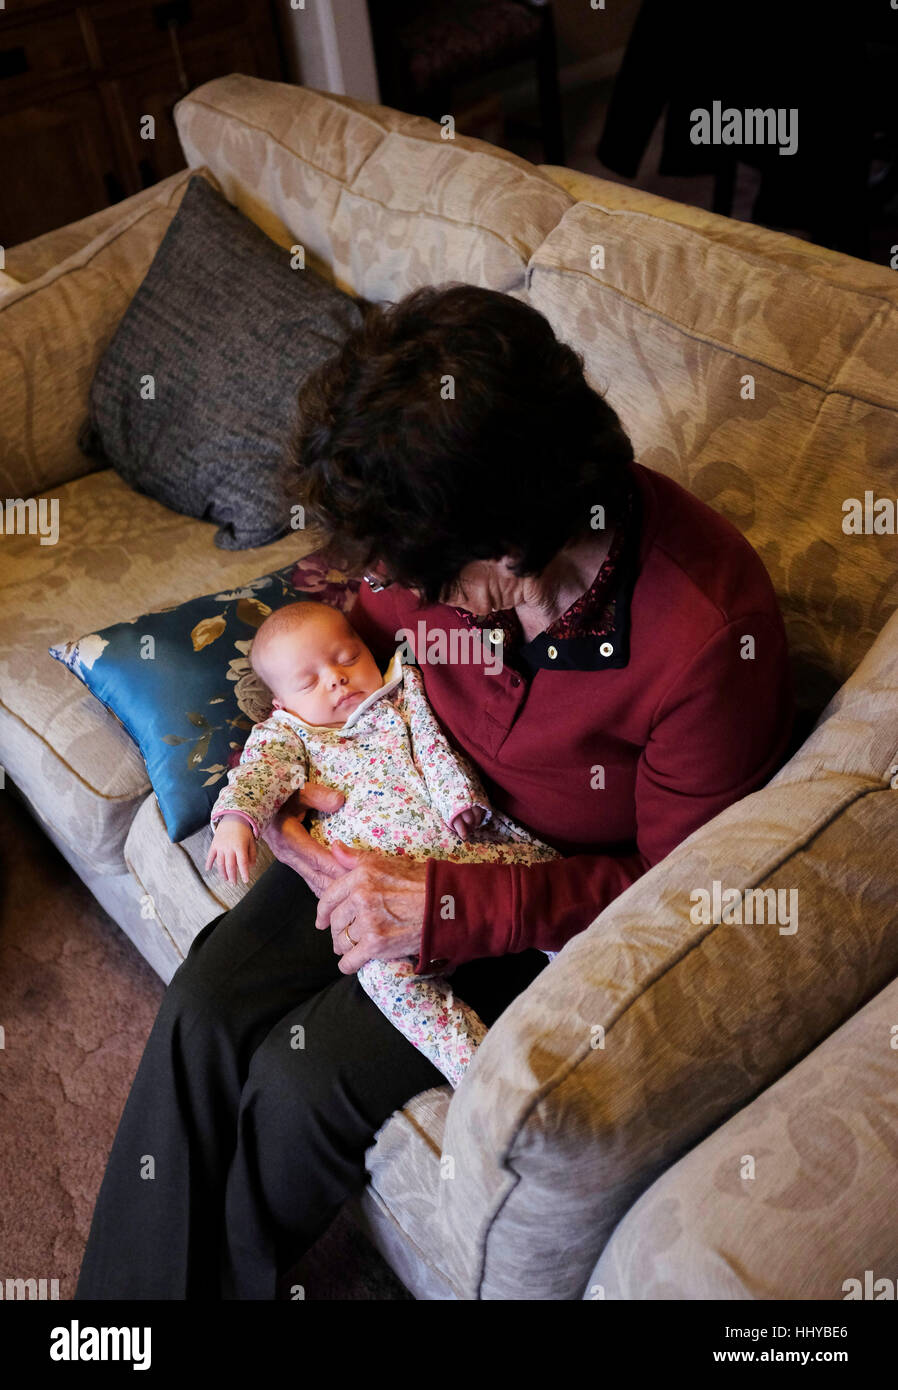 Elderly woman in her eighties cradling a young baby girl in her arms - Stock Image